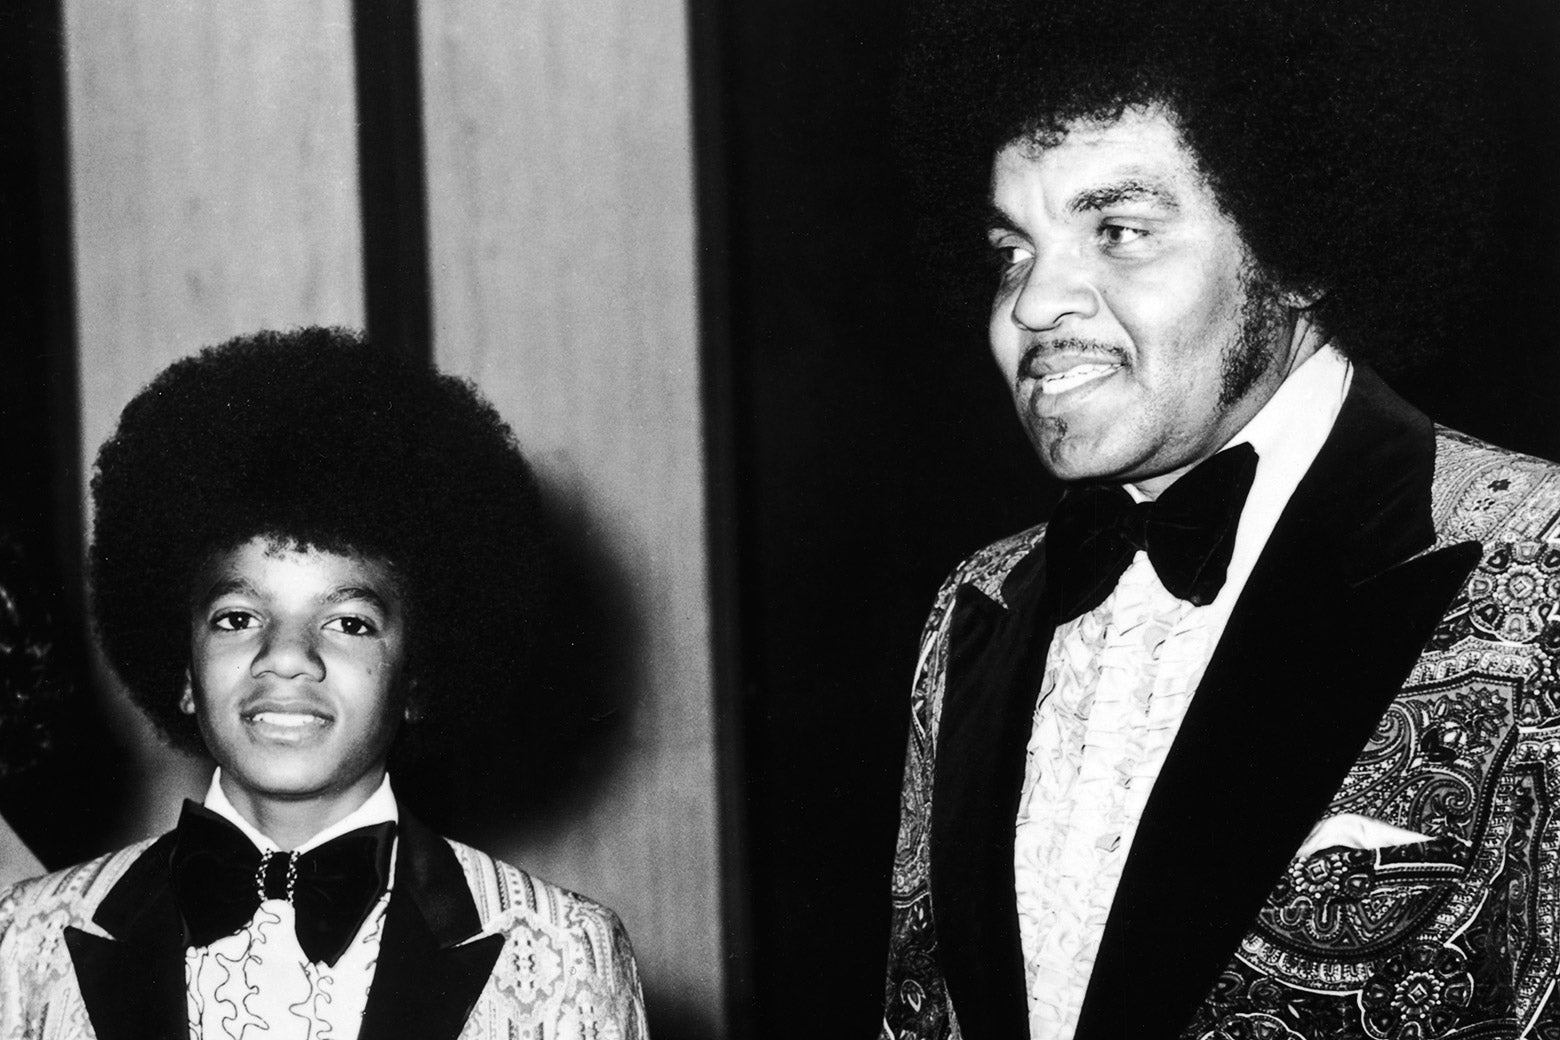 Michael Jackson and his father, Joe Jackson, at the Golden Globes.